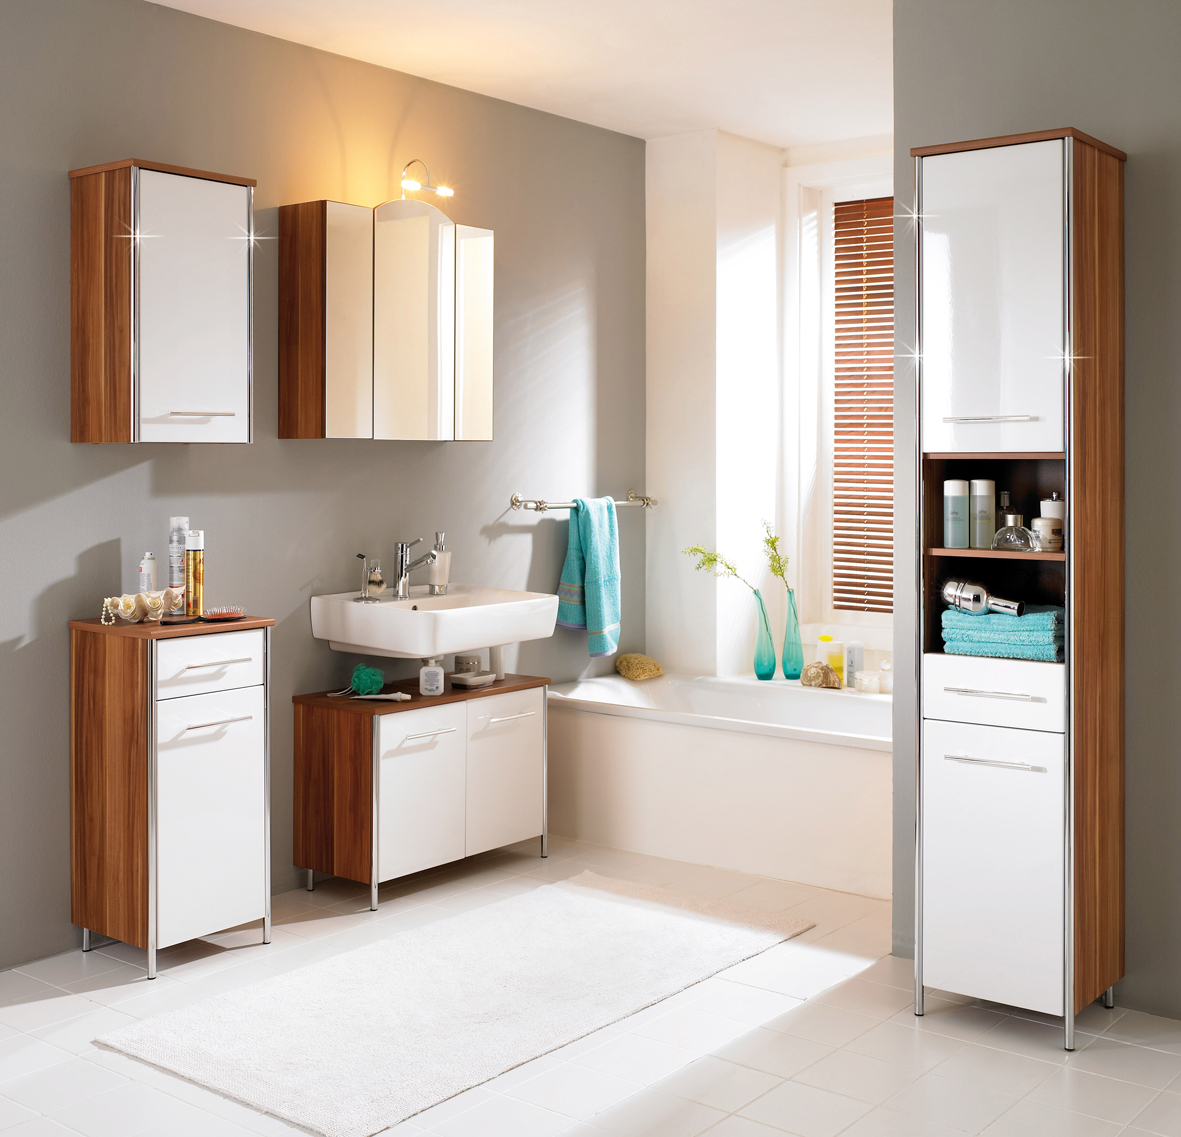 Small Bathroom Cabinets Ideas: Keep Your Bathrooms Sparkling Clean